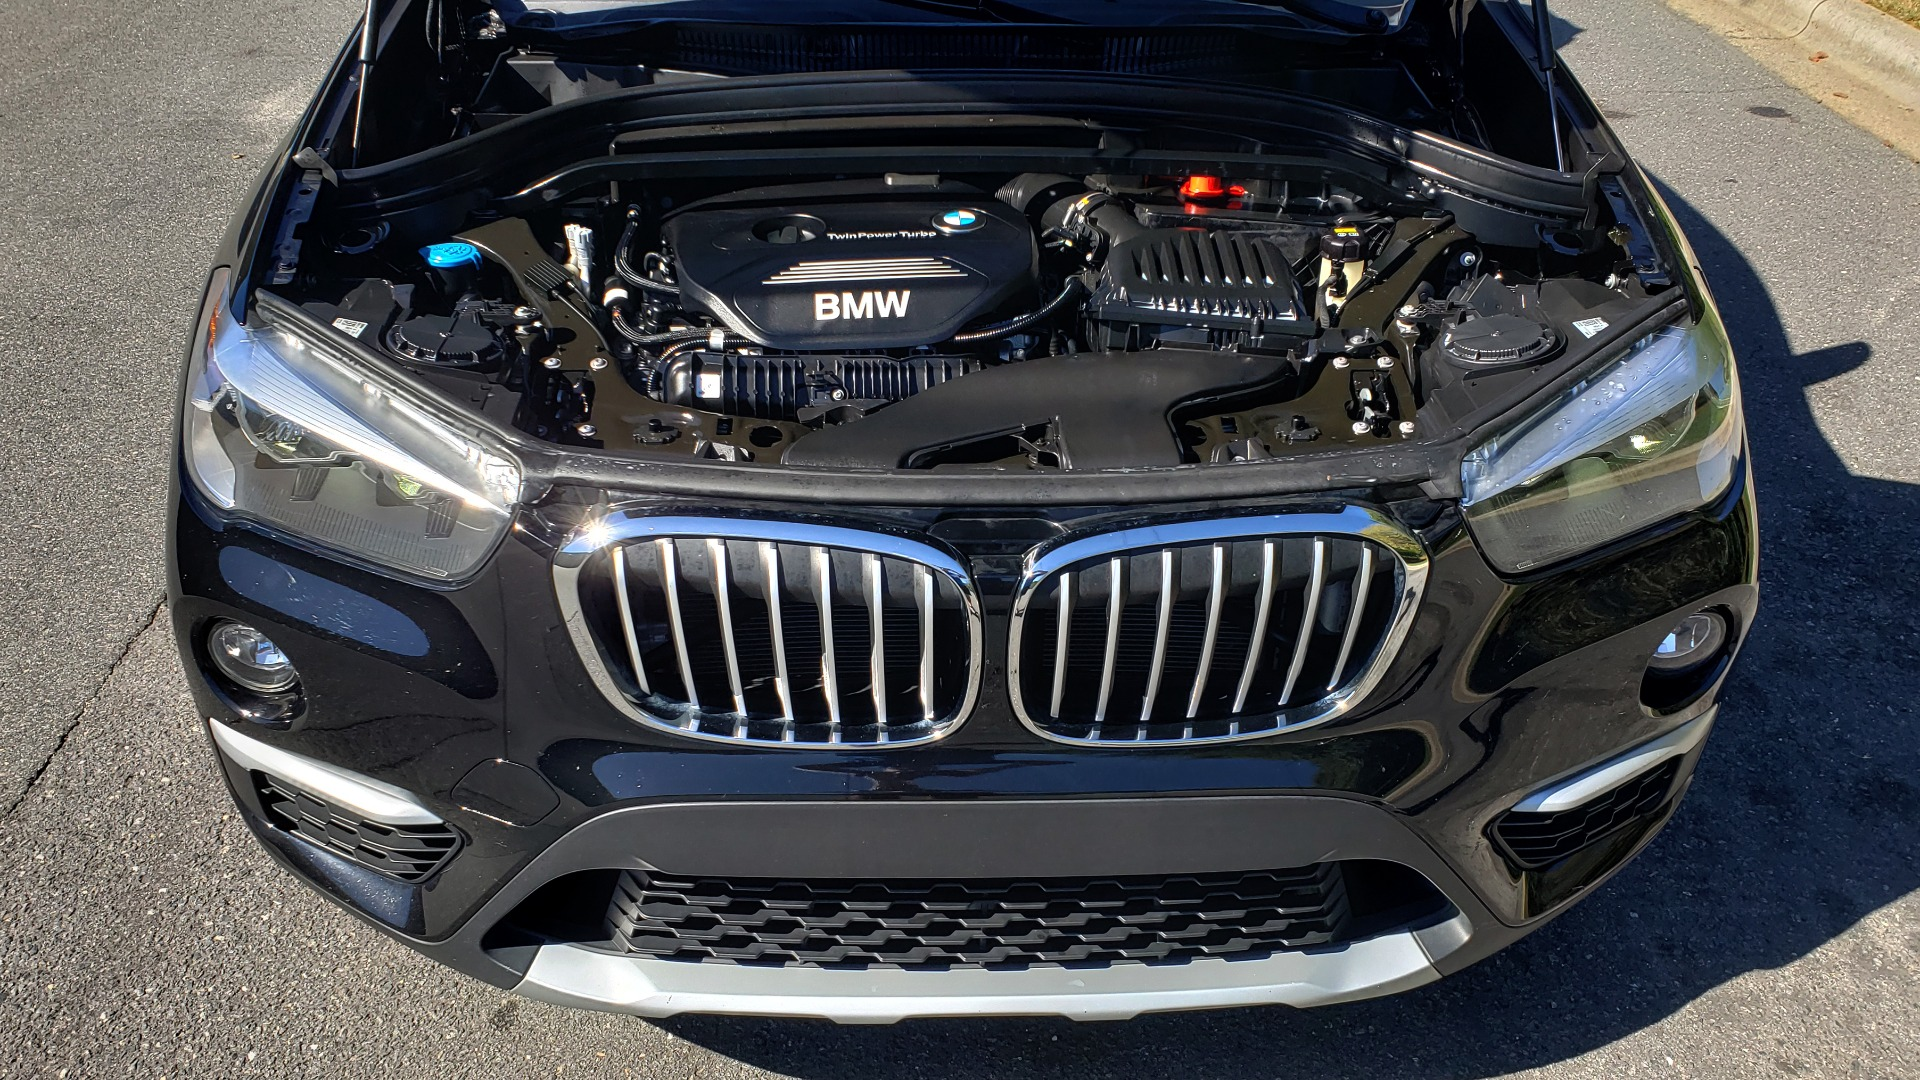 Used 2018 BMW X1 SDRIVE28I / HEATED SEATS / 4-CYL / 8-SPD AUTO / REARVIEW for sale Sold at Formula Imports in Charlotte NC 28227 12